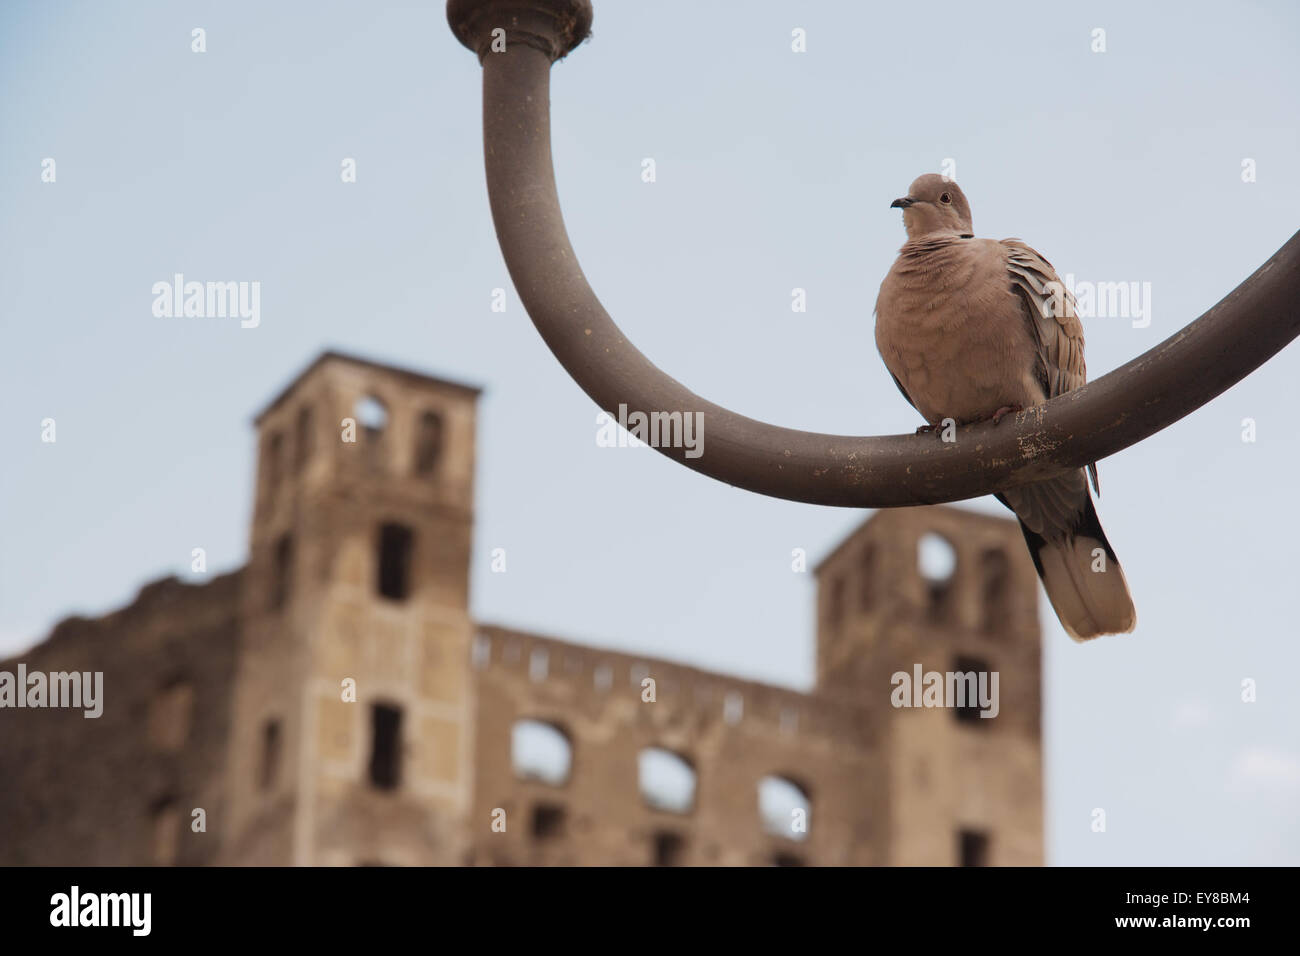 Eurasian collared dove, latin name Streptopelia Decaocto, resting alone on an iron lamp ruined castle in background - Stock Image